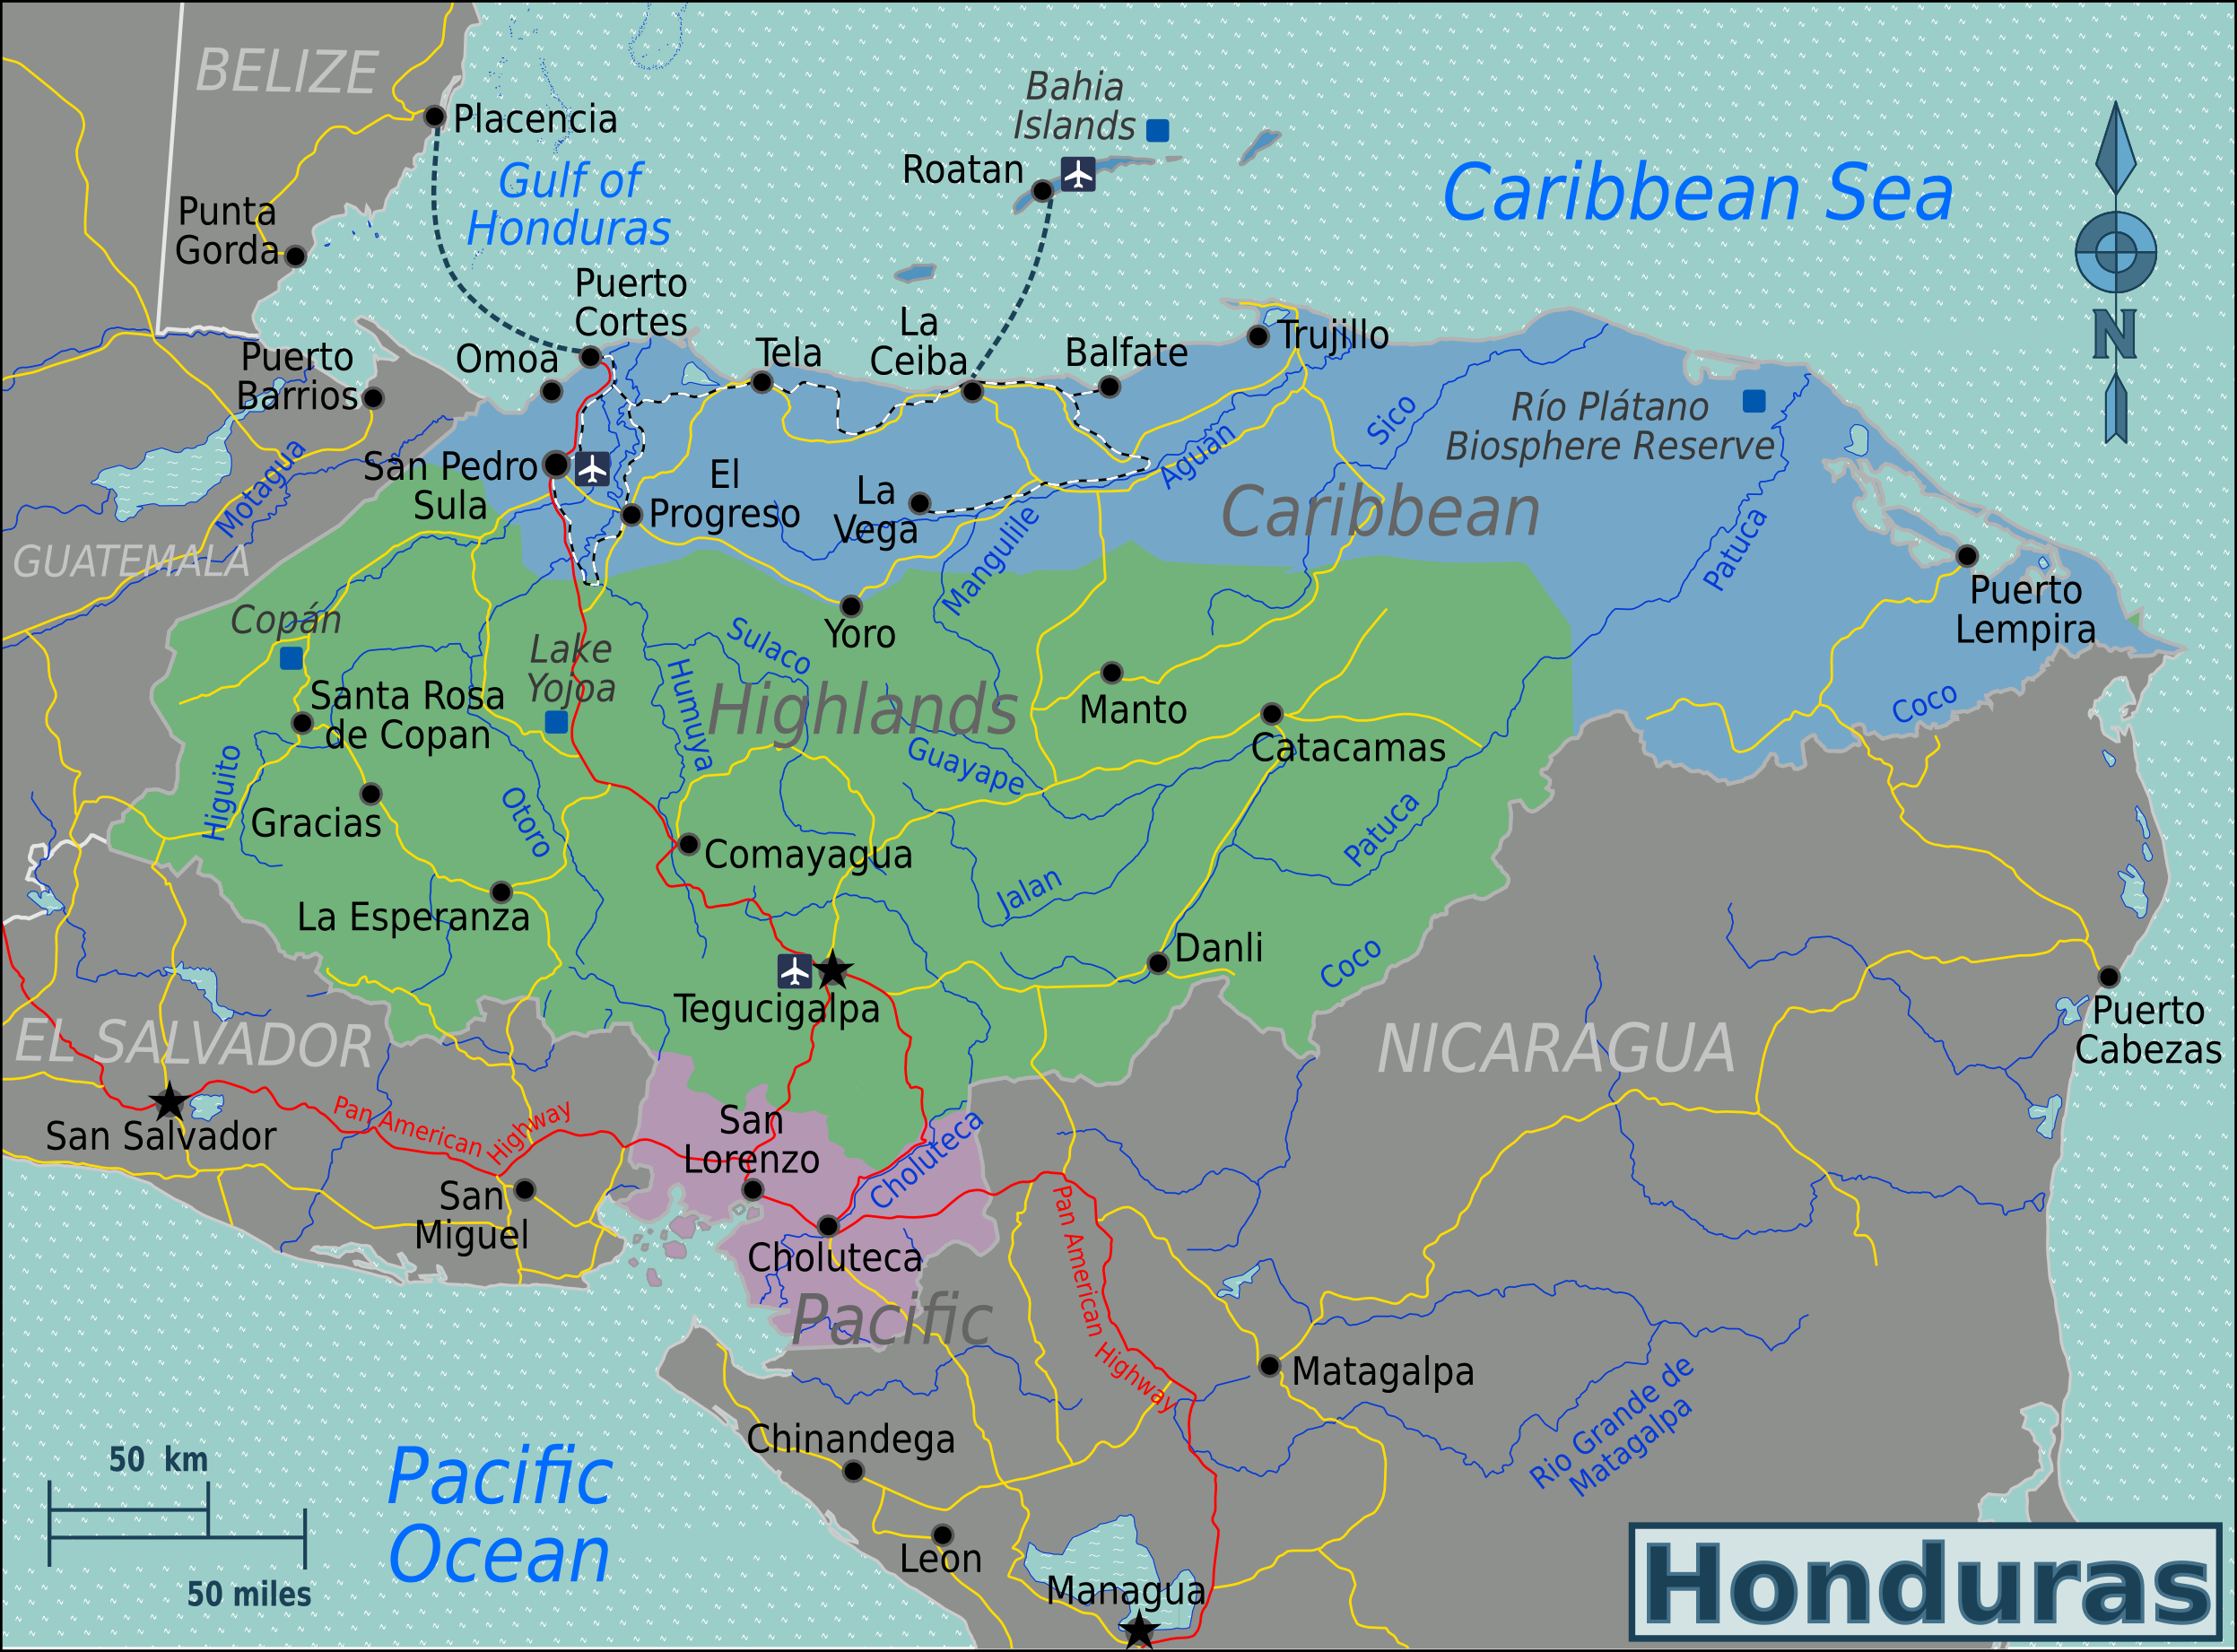 Archivohonduras regions mapg wikipedia la enciclopedia libre archivohonduras regions mapg gumiabroncs Image collections